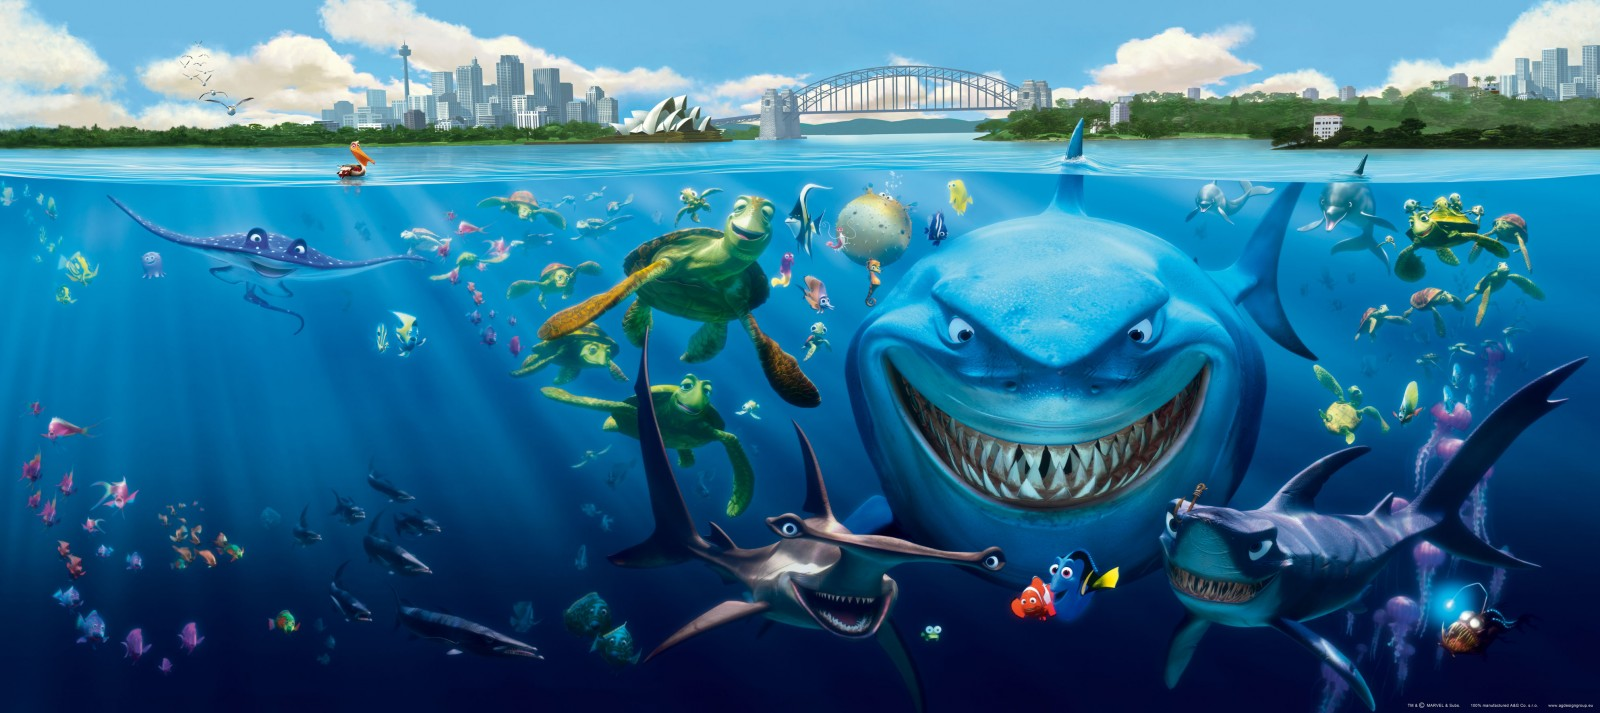 Wall Mural Wallpaper Finding Nemo 3 Sharks Bruce Anchor